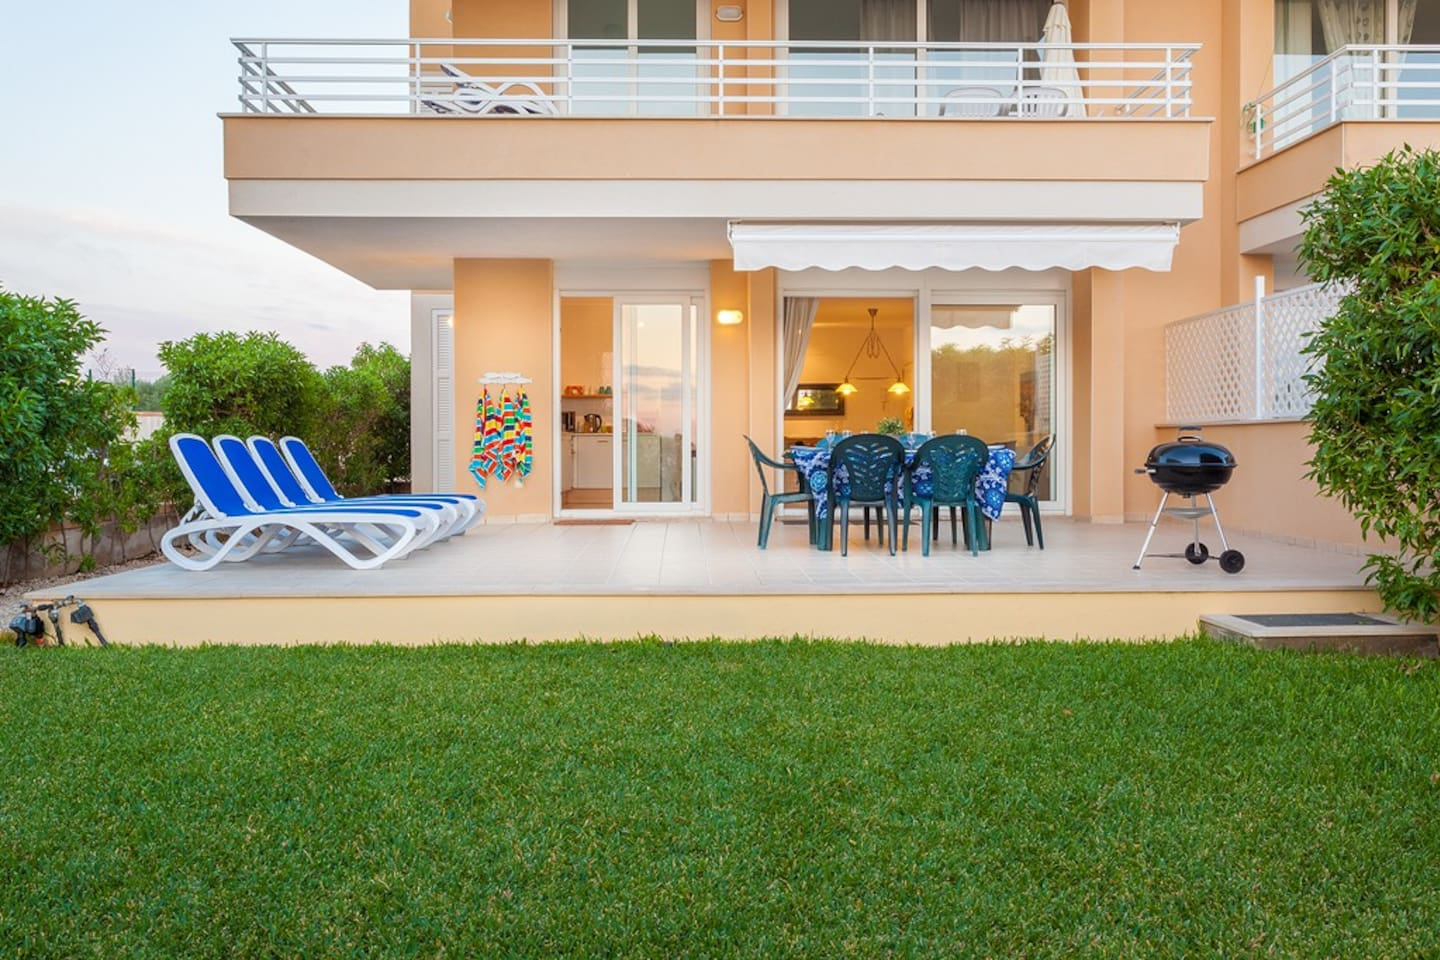 The spacious verandah leads onto a private garden with steps leading to the shared adult and children's swimming pool area.